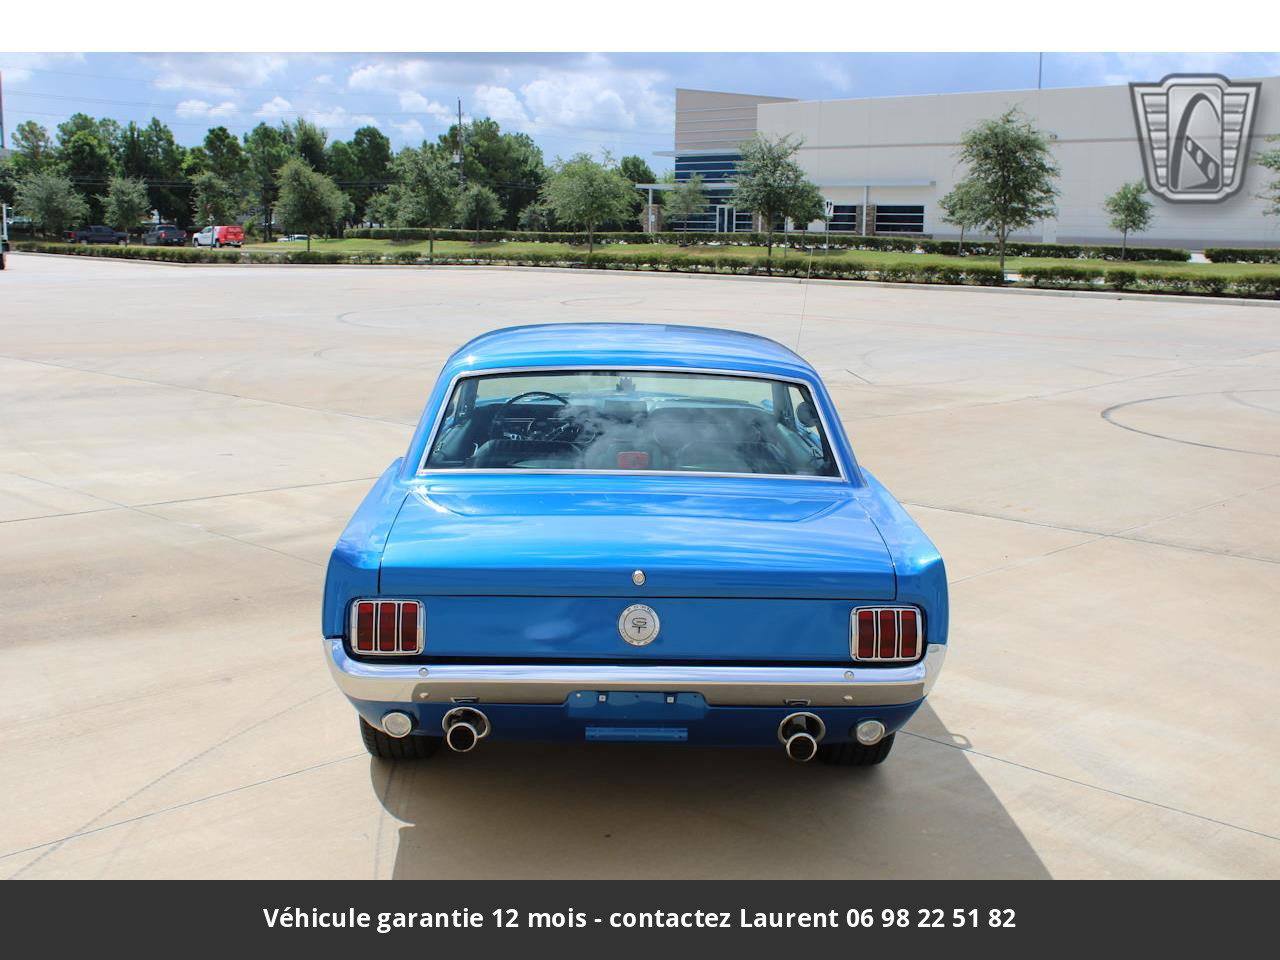 Ford Mustang Pony pack v8 289 1965 prix tout compris